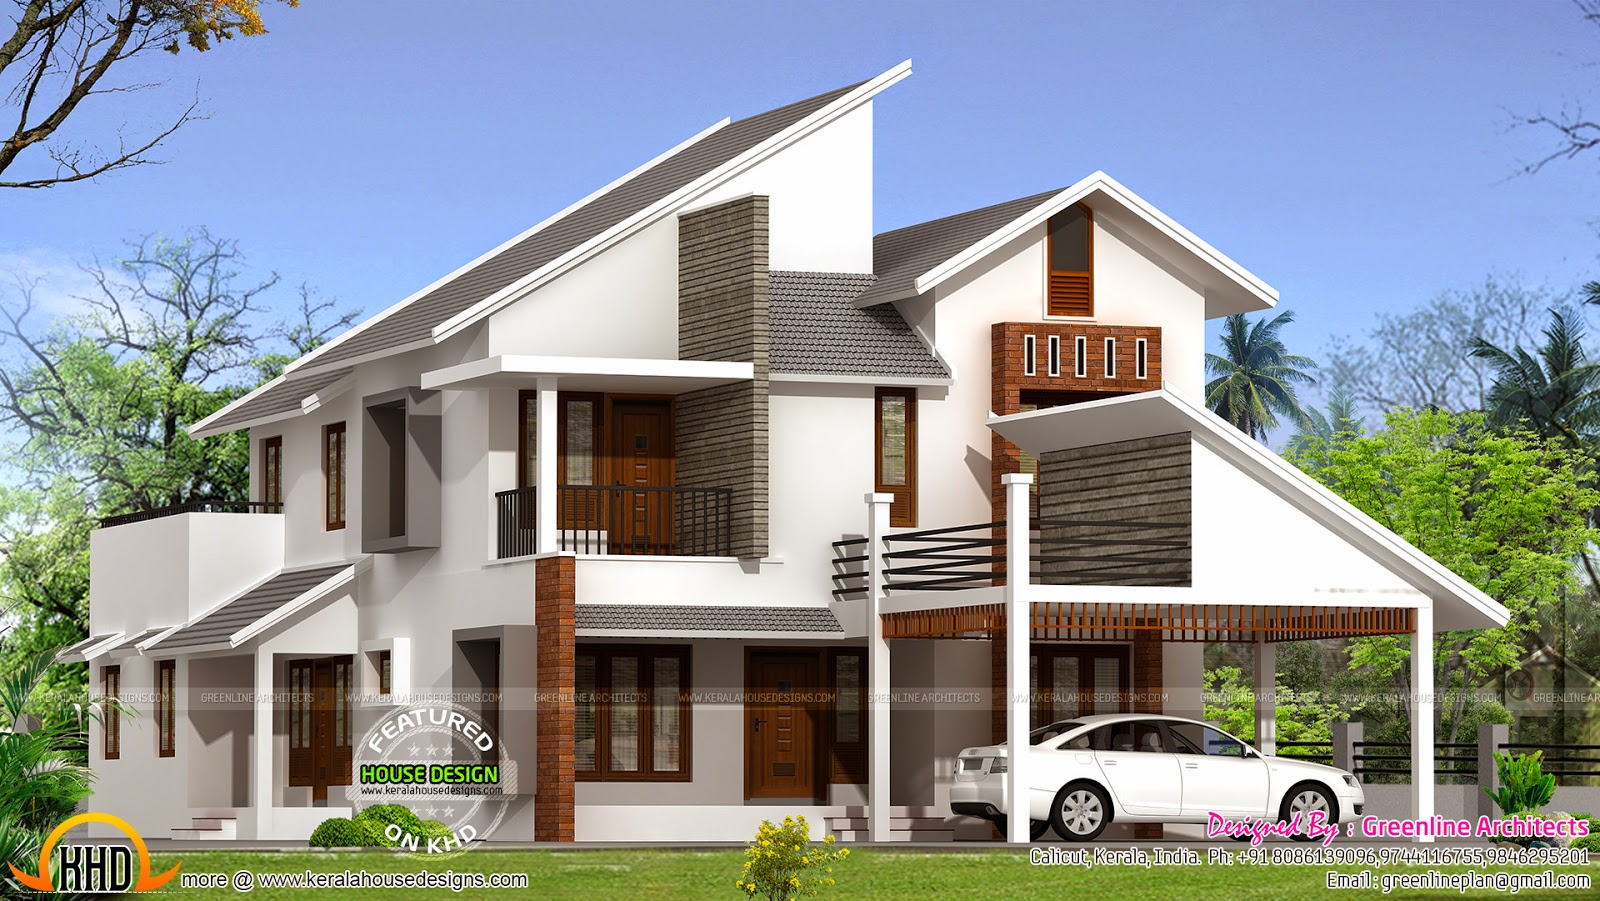 New modern house plan kerala home design and floor plans for New house plans